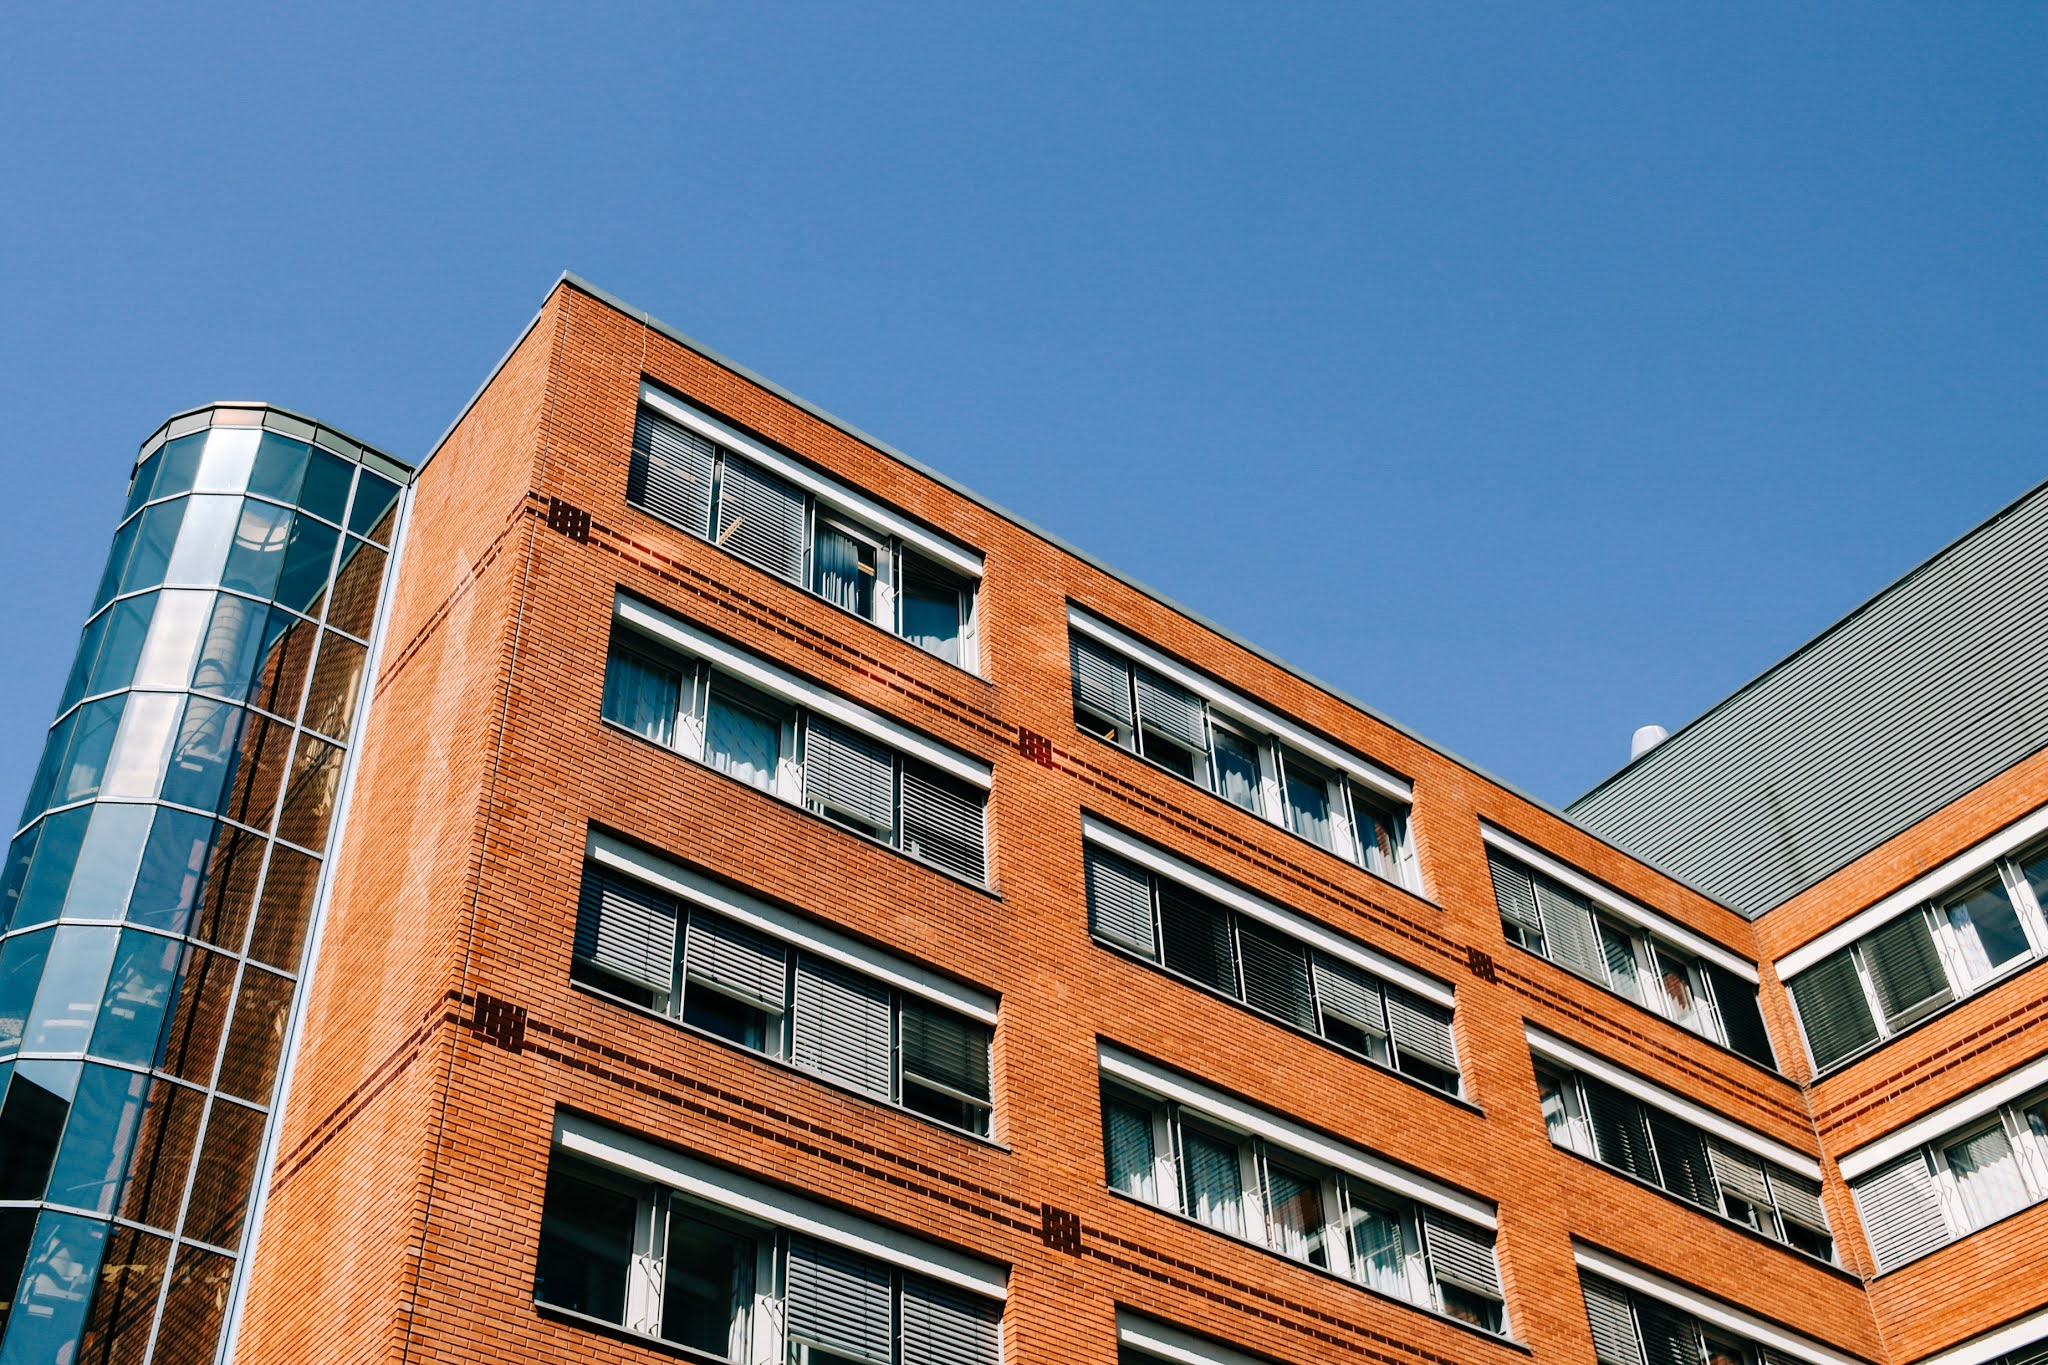 Modern apartment building with brick walls from Pexels